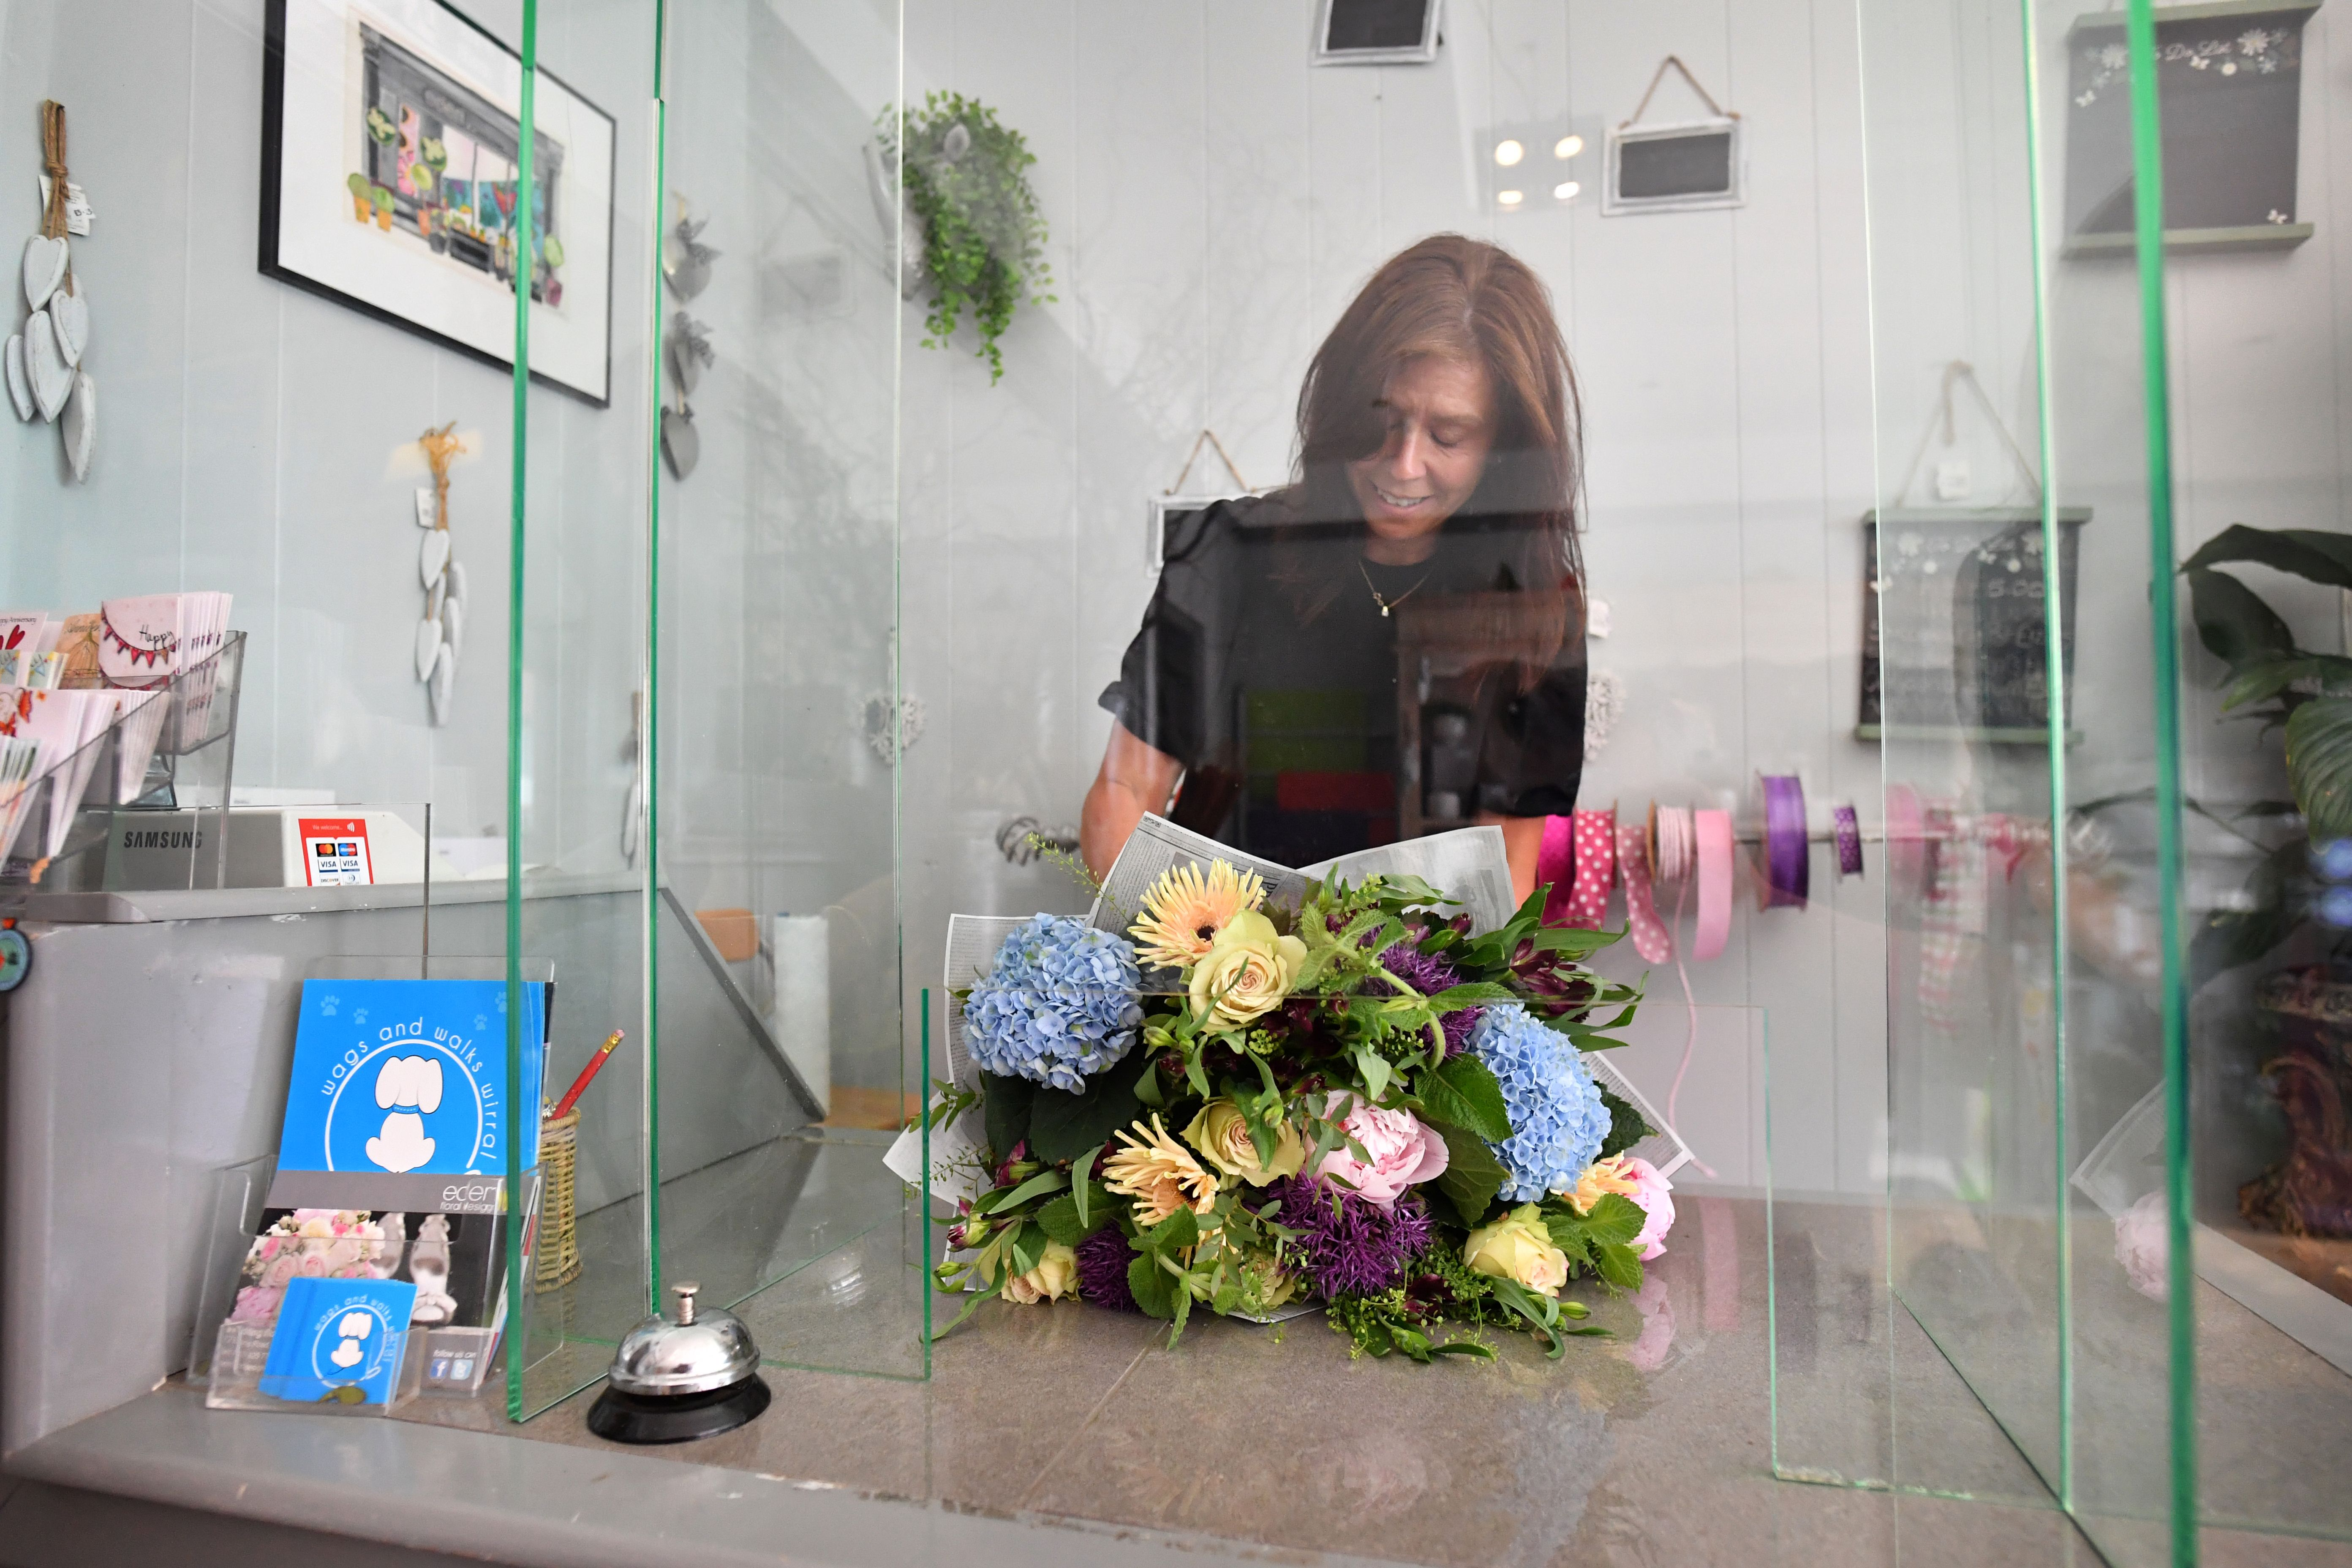 Florist Trish Collins-Morgan works behind a plastic screen as she re-opens her shop, with various safety policies in place, in West Kirby north west England on June 17, 2020, as lockdown restrictions are eased during the novel coronavirus COVID-19 pandemic. - Various stores and outdoor attractions in England opened Monday for the first time in nearly three months, as the government continues to ease its coronavirus lockdown. (Photo by Paul ELLIS / AFP) (Photo by PAUL ELLIS/AFP via Getty Images)